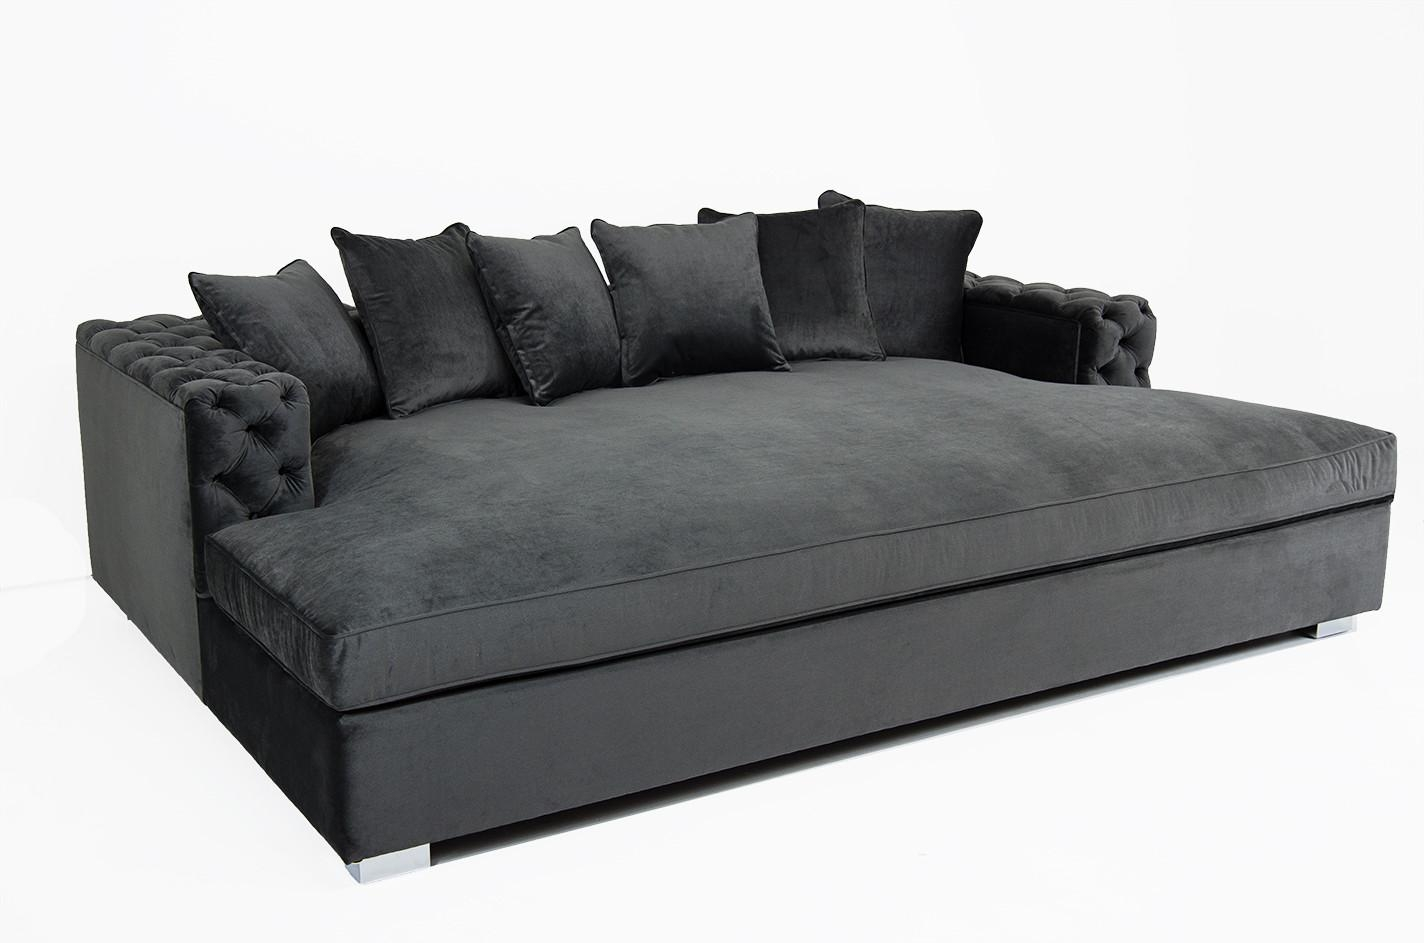 56 Daybed Sofa, Ideas About Daybed Couch On Pinterest Daybeds pertaining to Sofa Day Beds